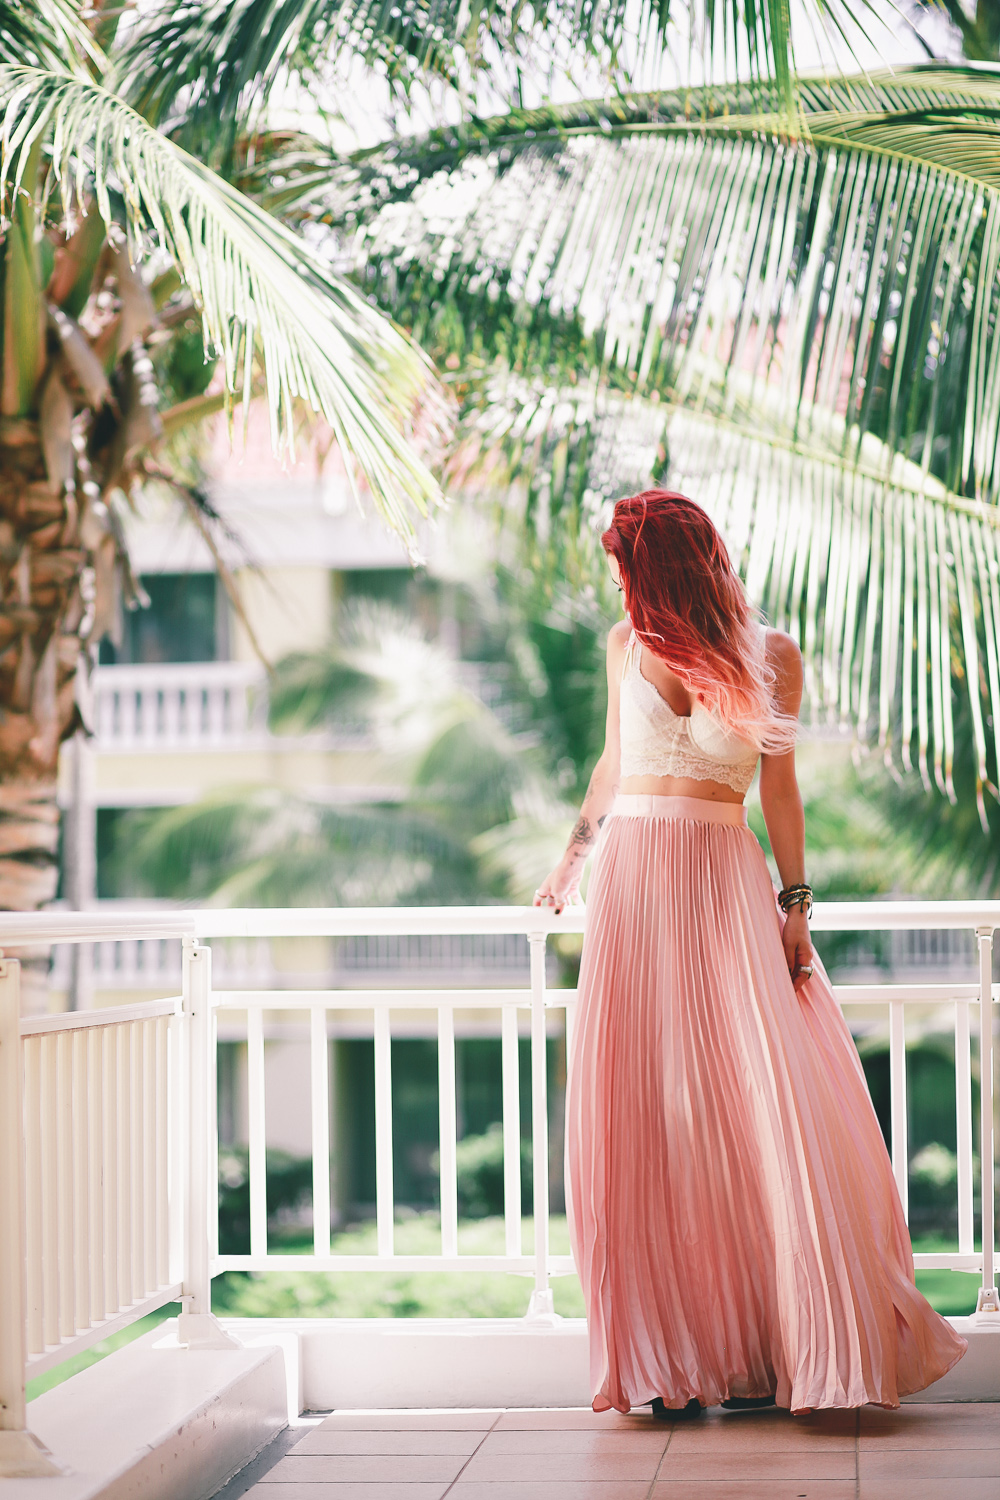 Le Happy wearing pastel pleated skirt and lace bustier in summer